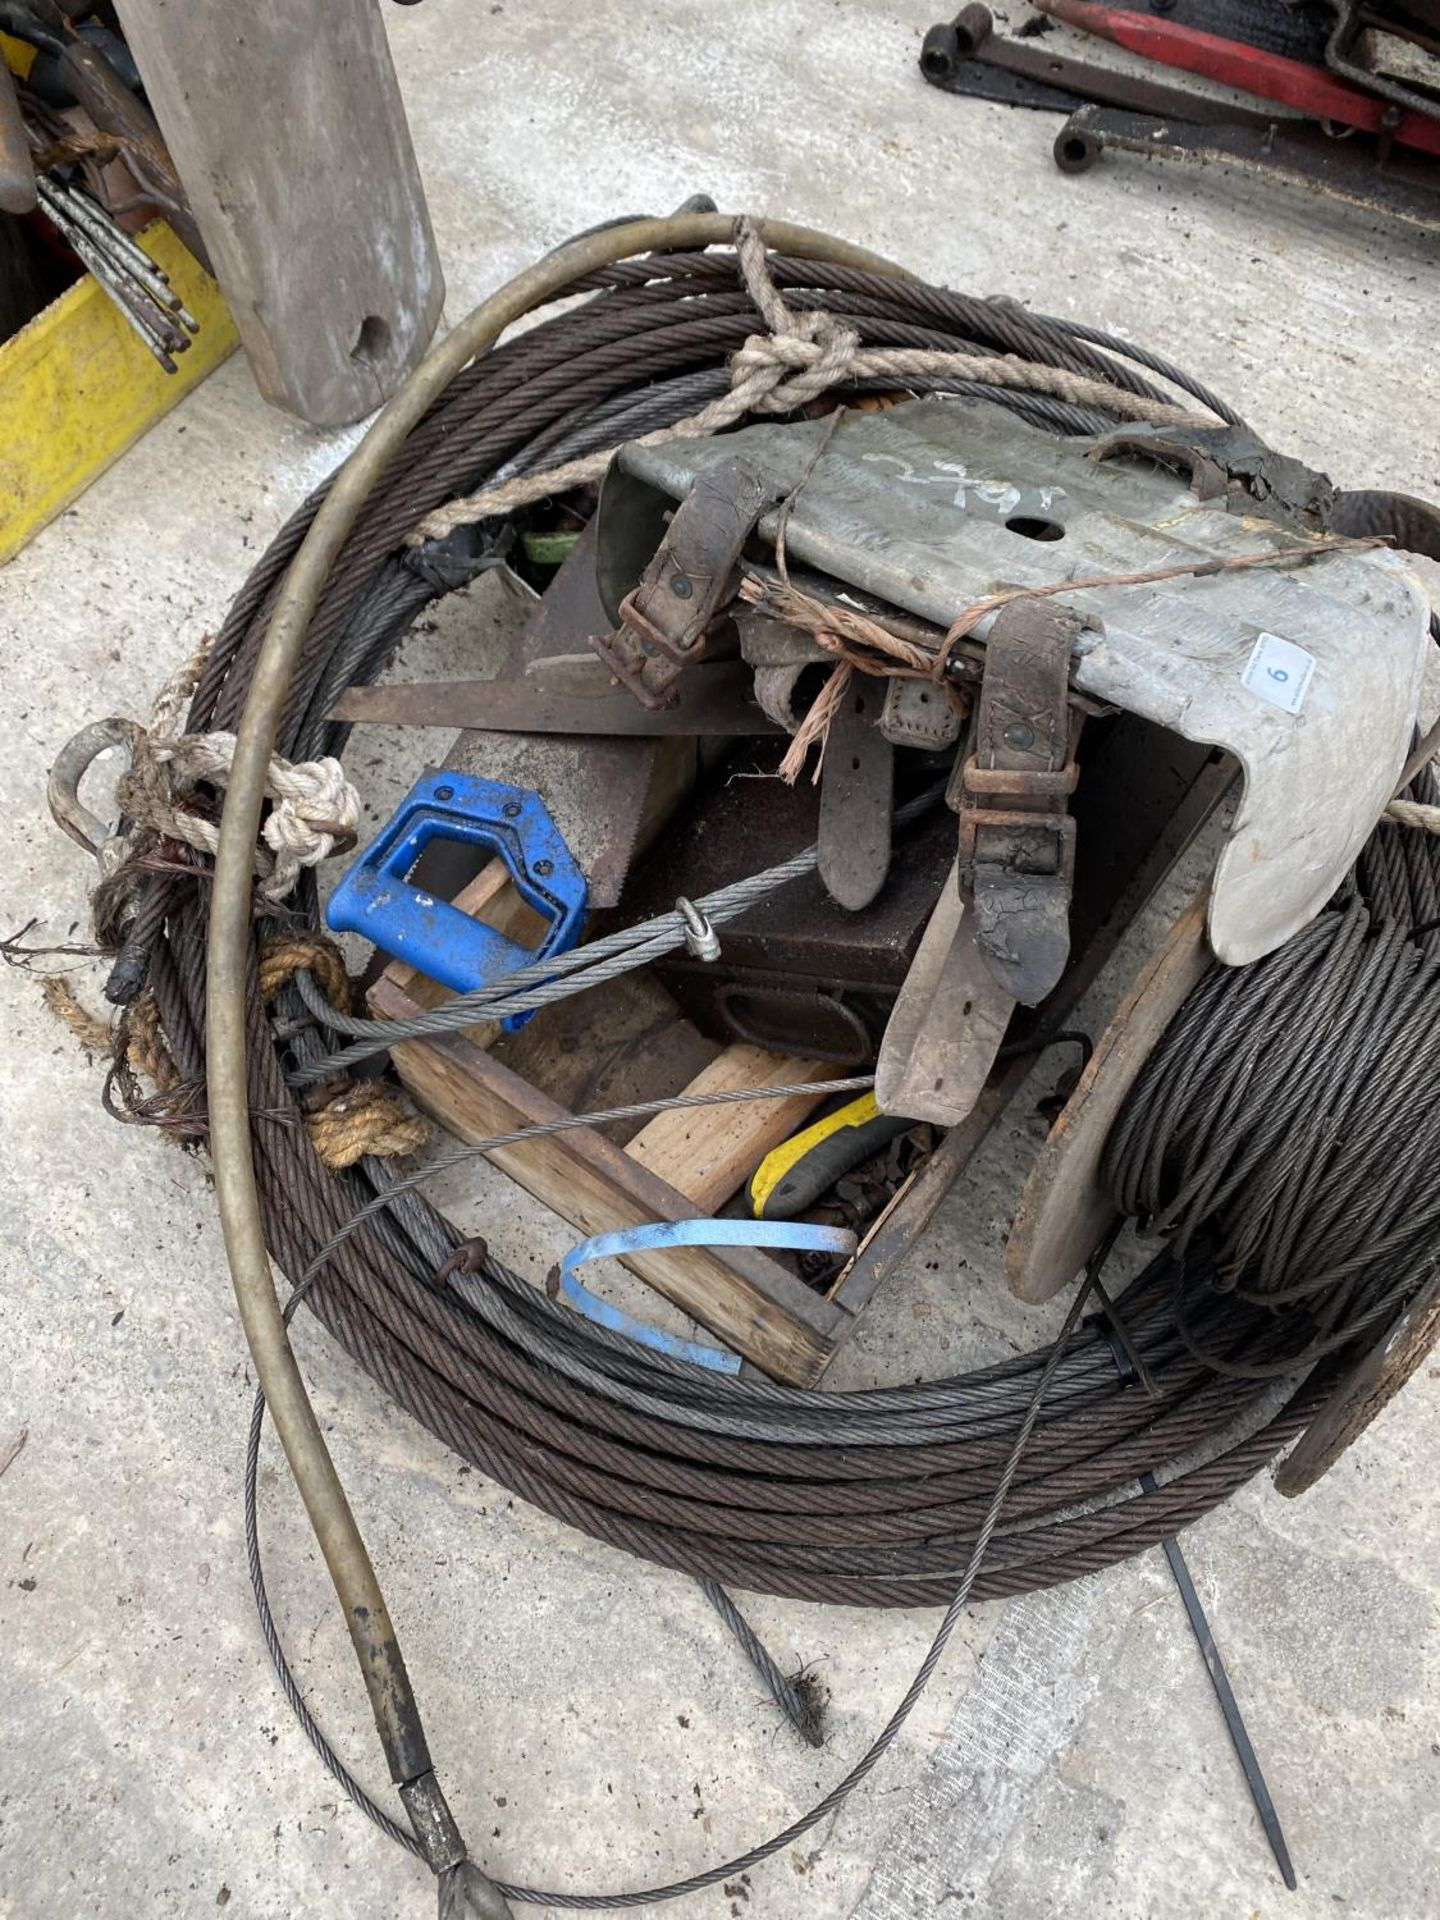 VARIOUS WIRE ROPES - NO VAT - Image 2 of 3